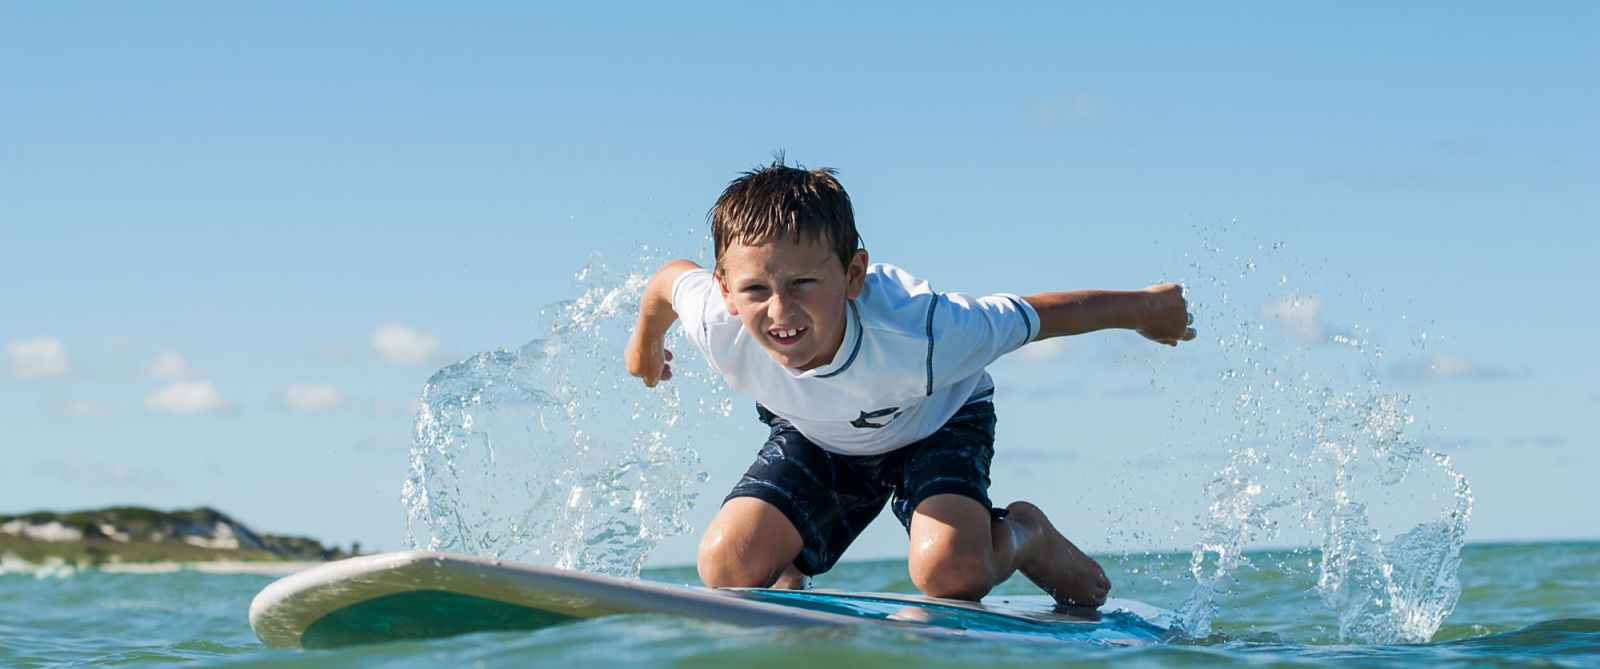 Background image of boy on paddleboard